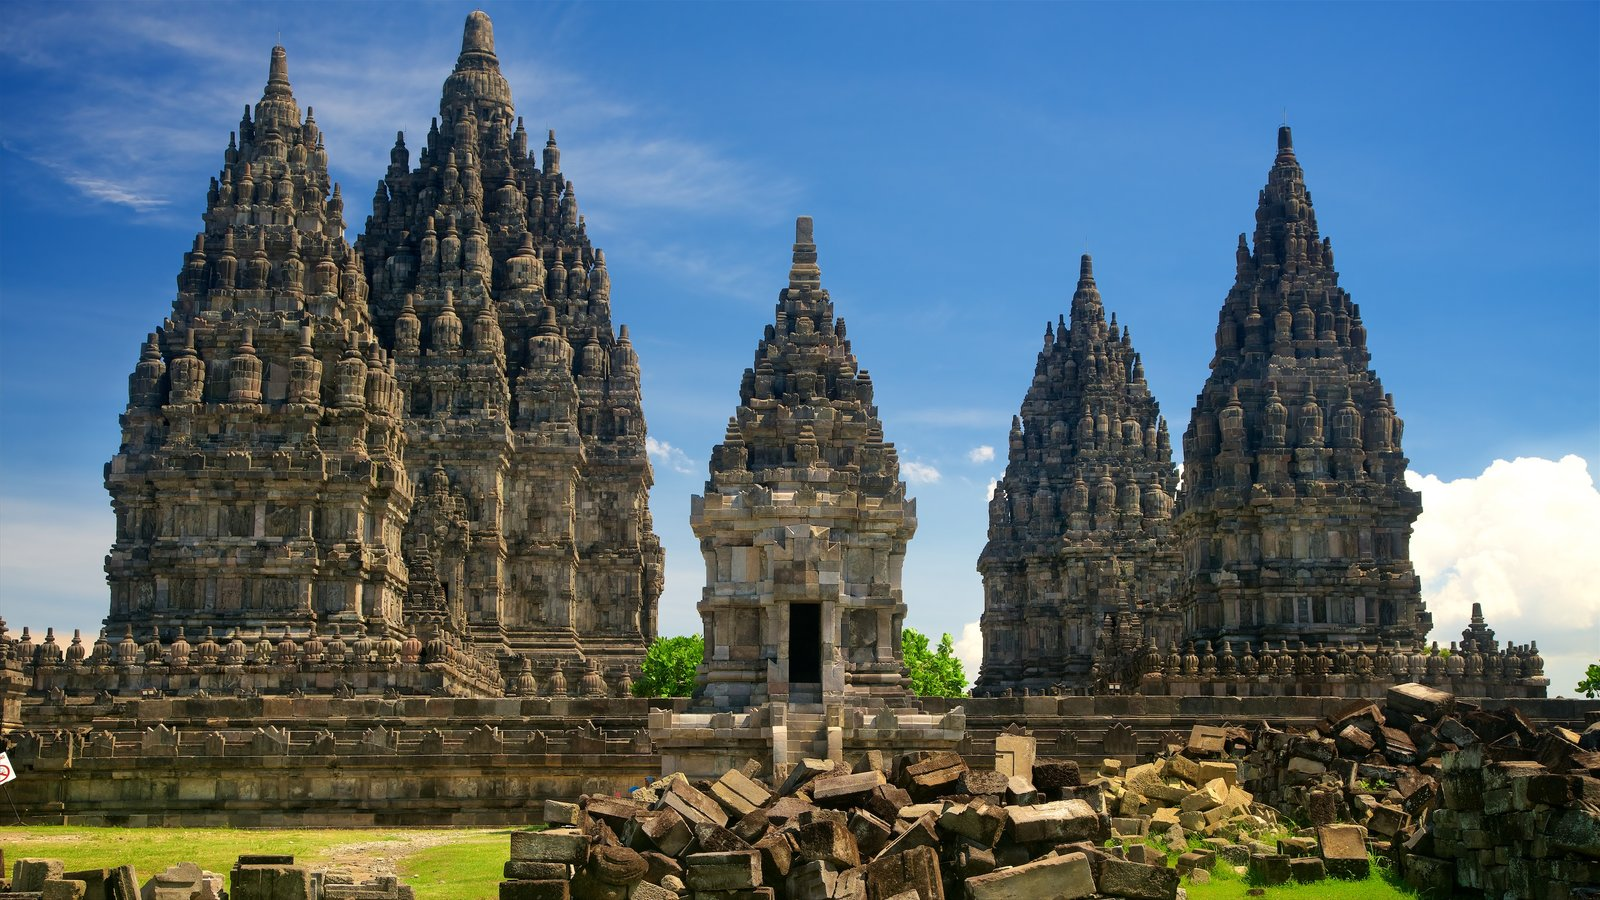 Prambanan Temple featuring building ruins and heritage architecture